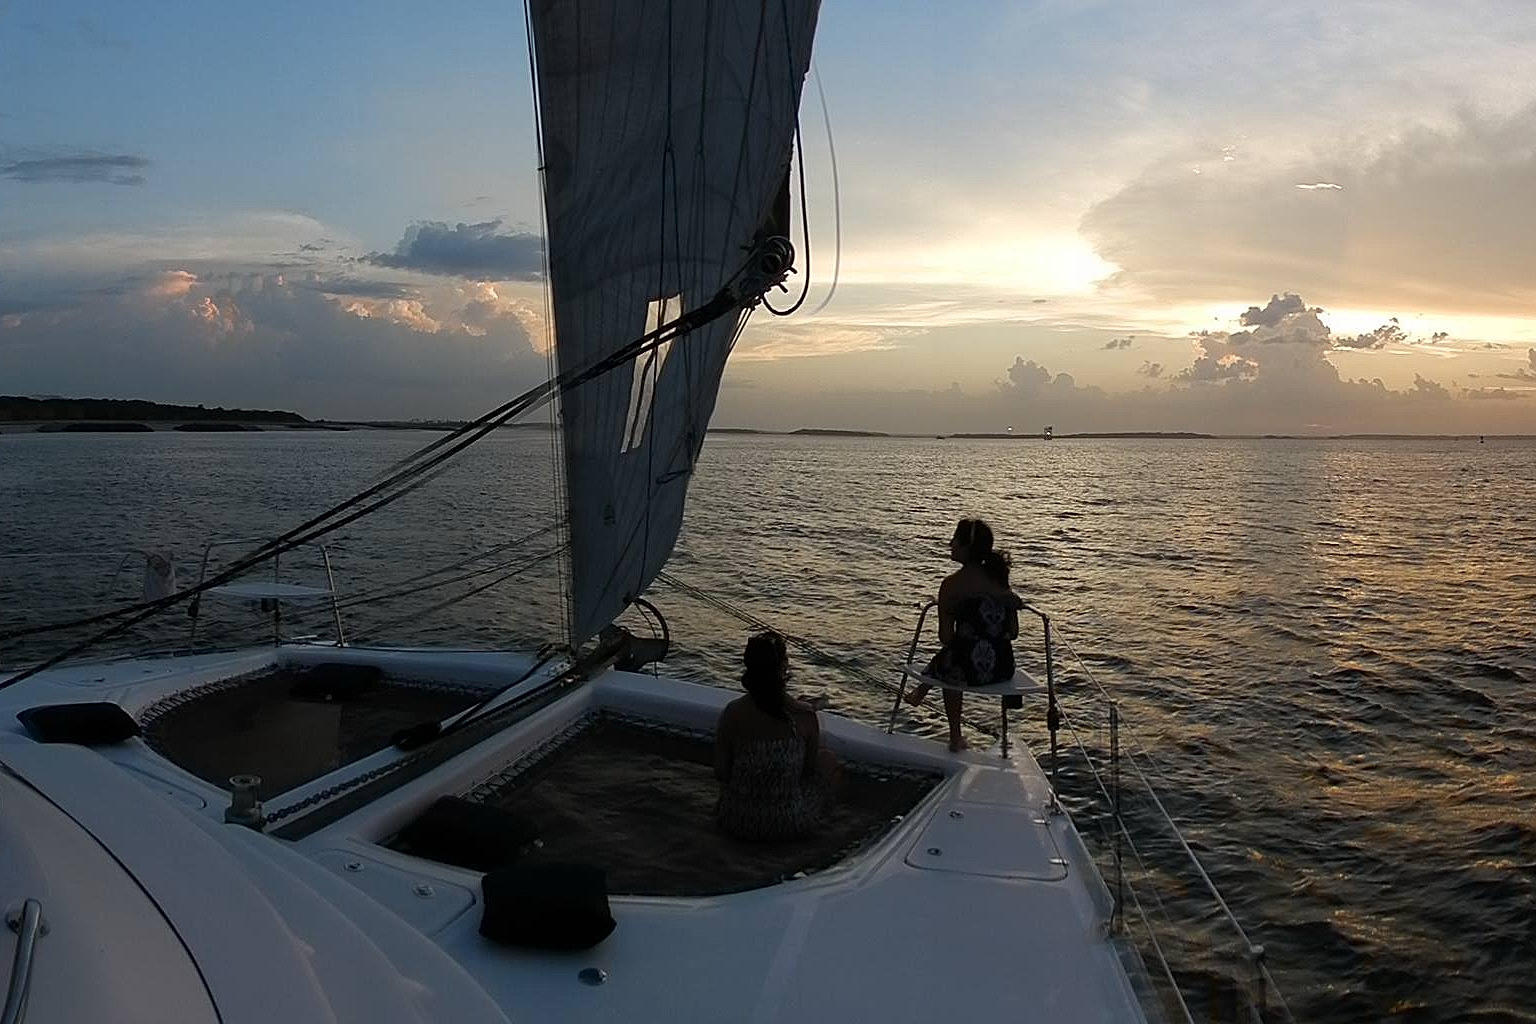 Sailing on Now and Zen private charters